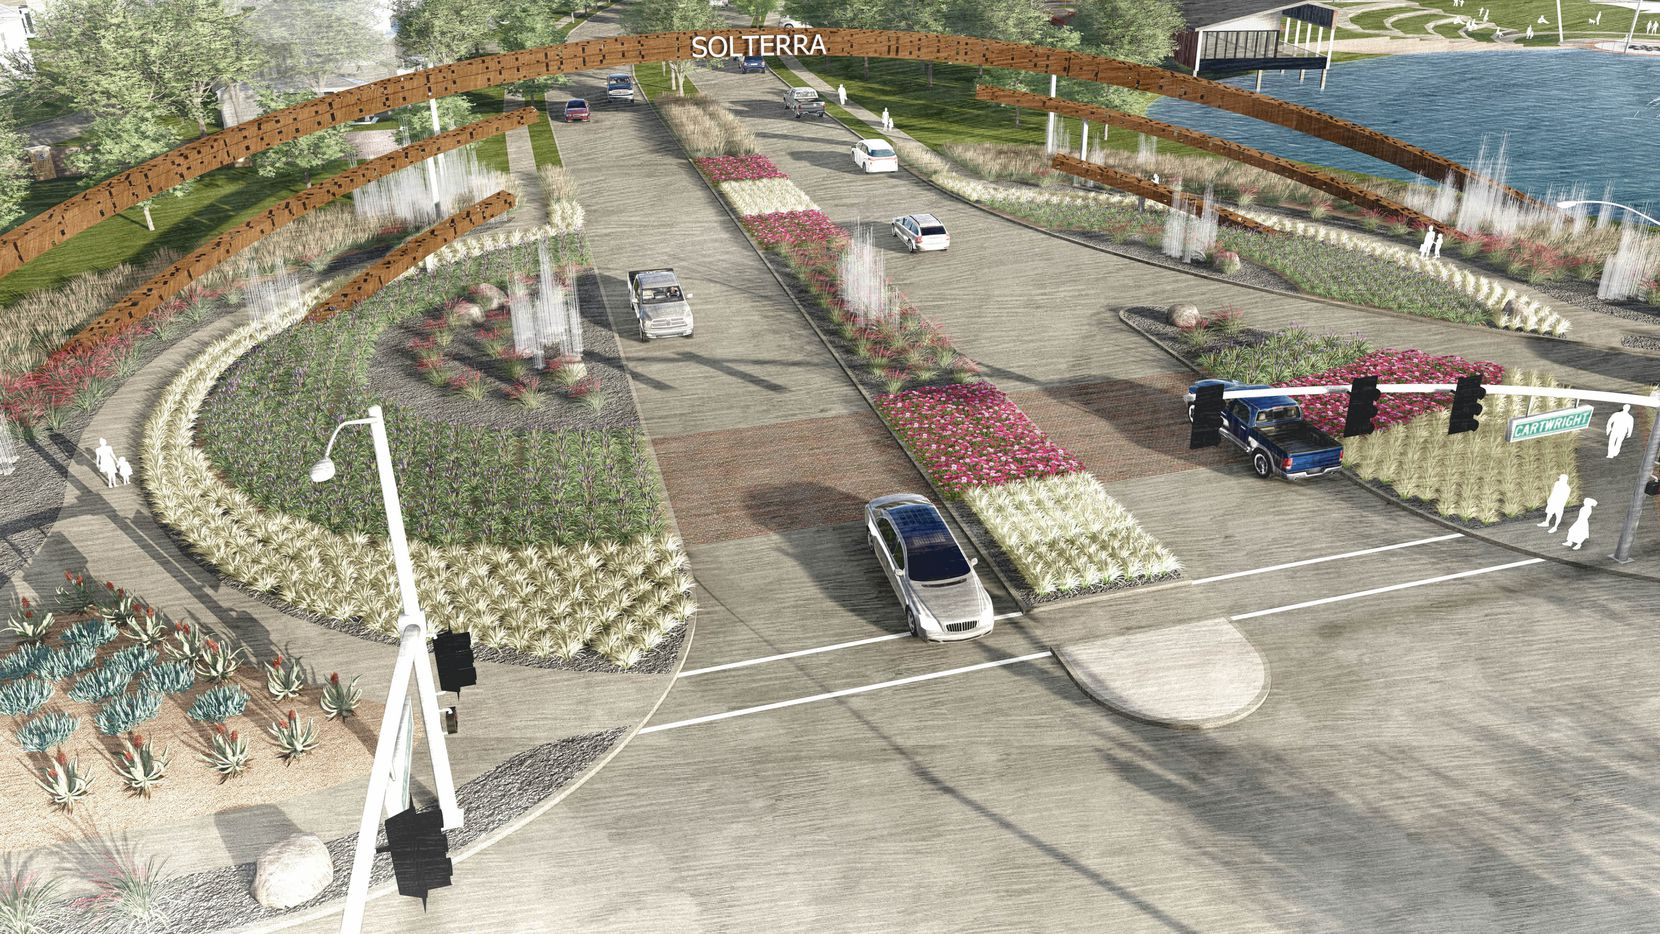 The planned Solterra community will have 3,900 homes.